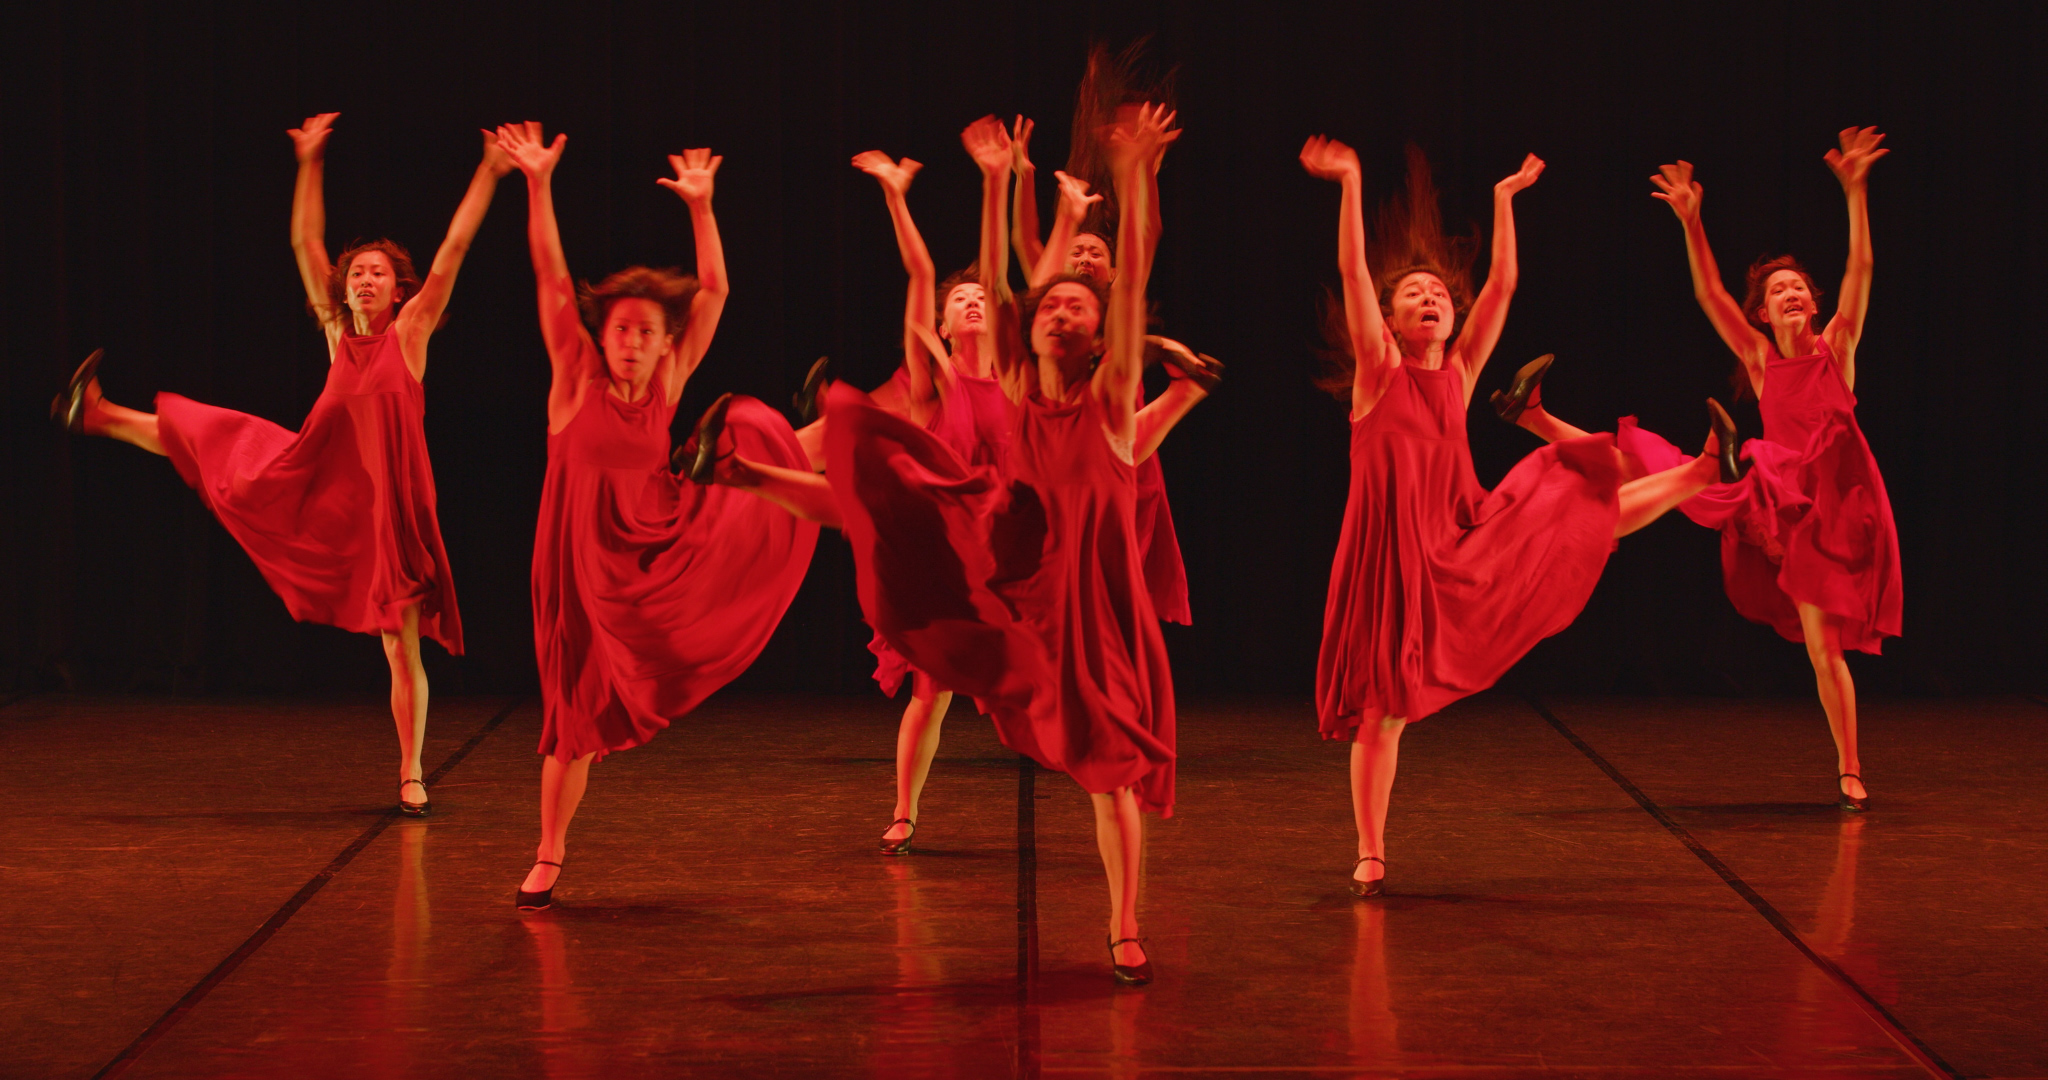 Japanese women dancing on stage wearing red dresses. They have their arms raised upwards, and one leg extended out.